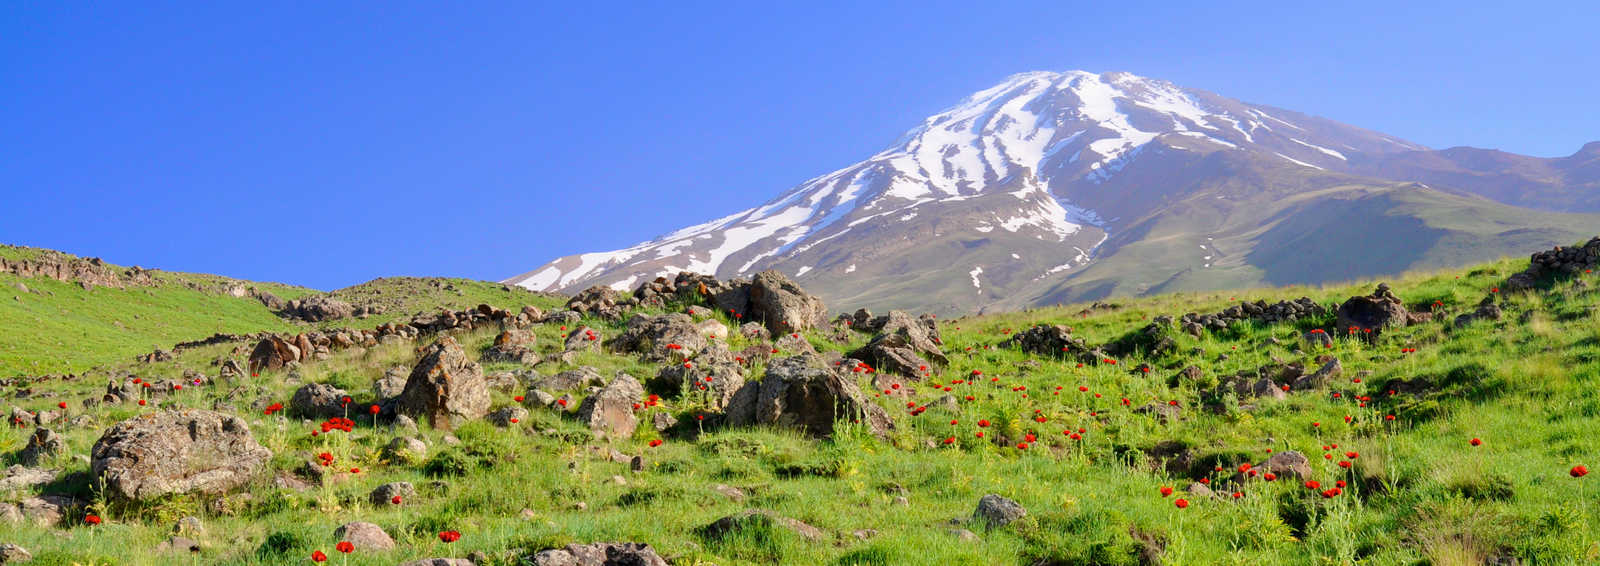 Picturesque green meadow with poppies and volcano Damavand in the background, Iran